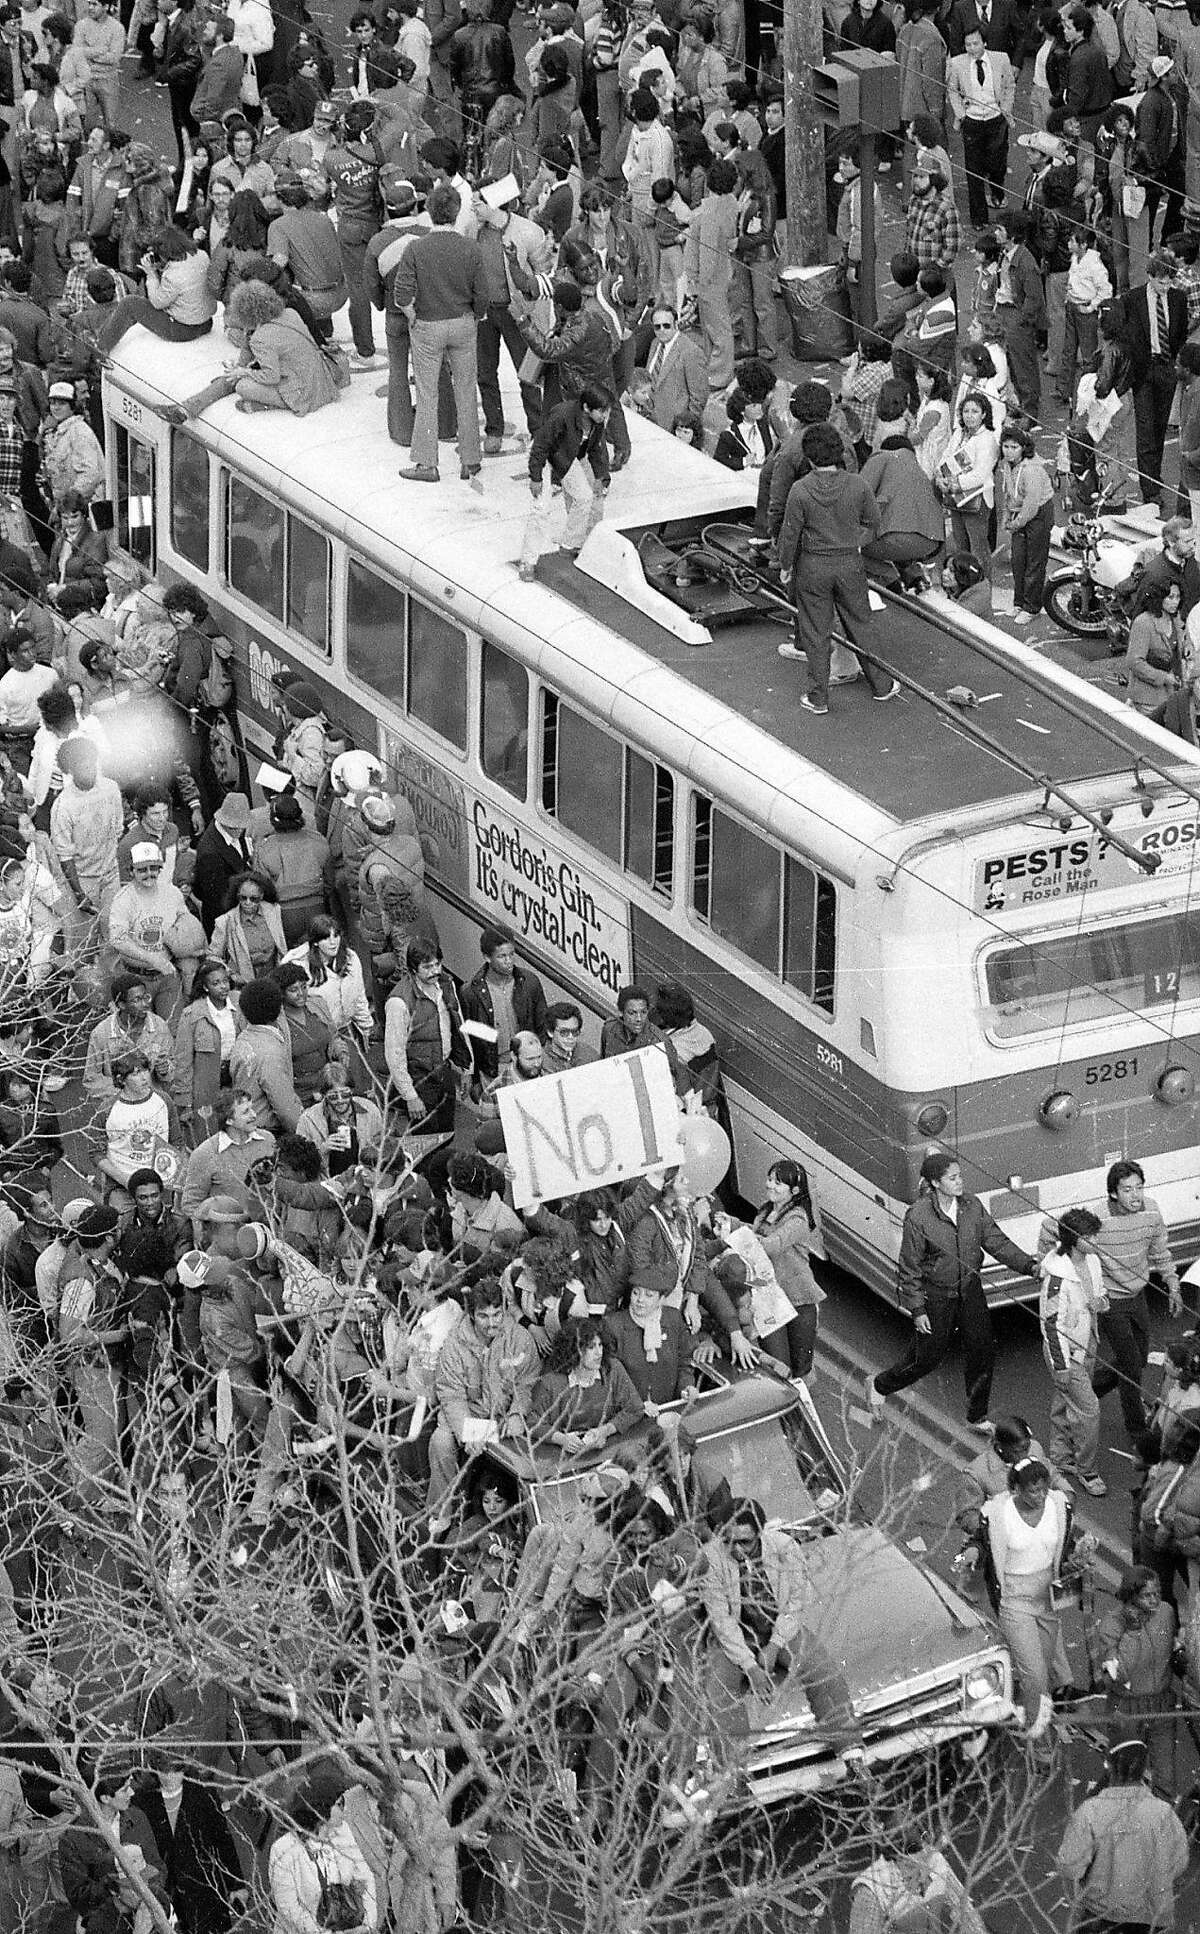 Fans celebrate the 49ers Super Bowl XVI win by climbing on top of a Muni bus. Jan. 25, 1982.